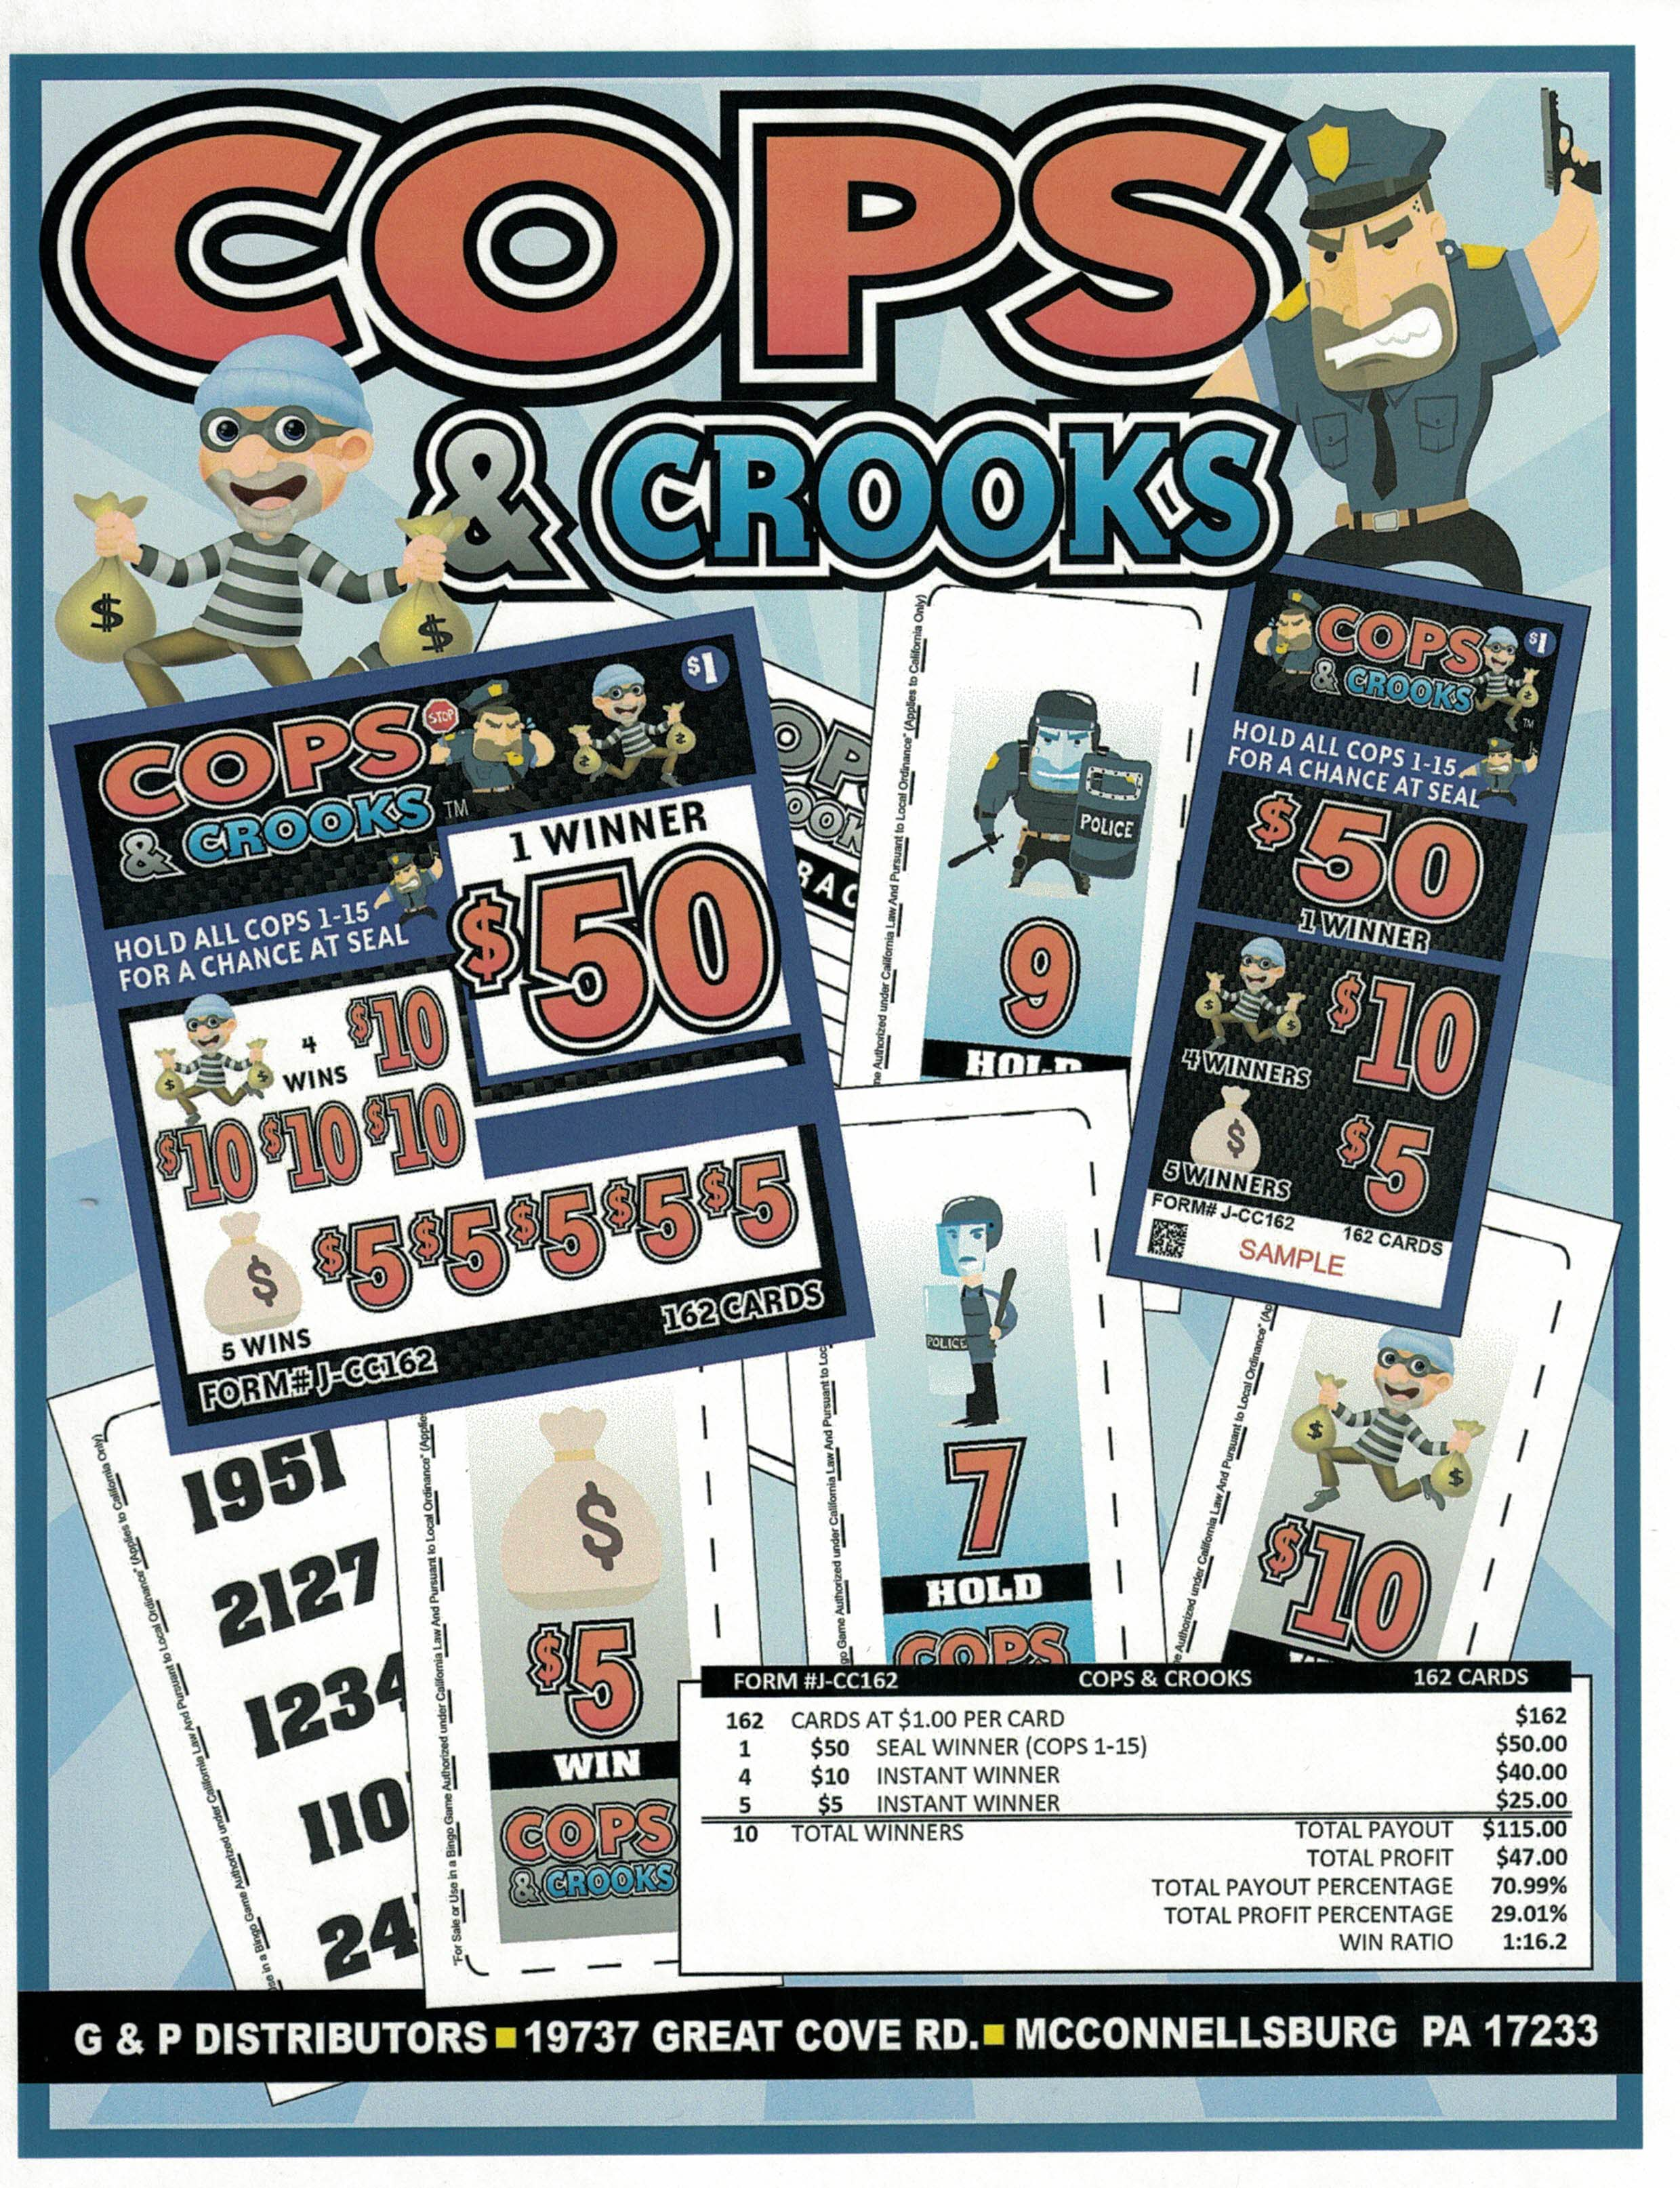 COPS & CROOKS Image